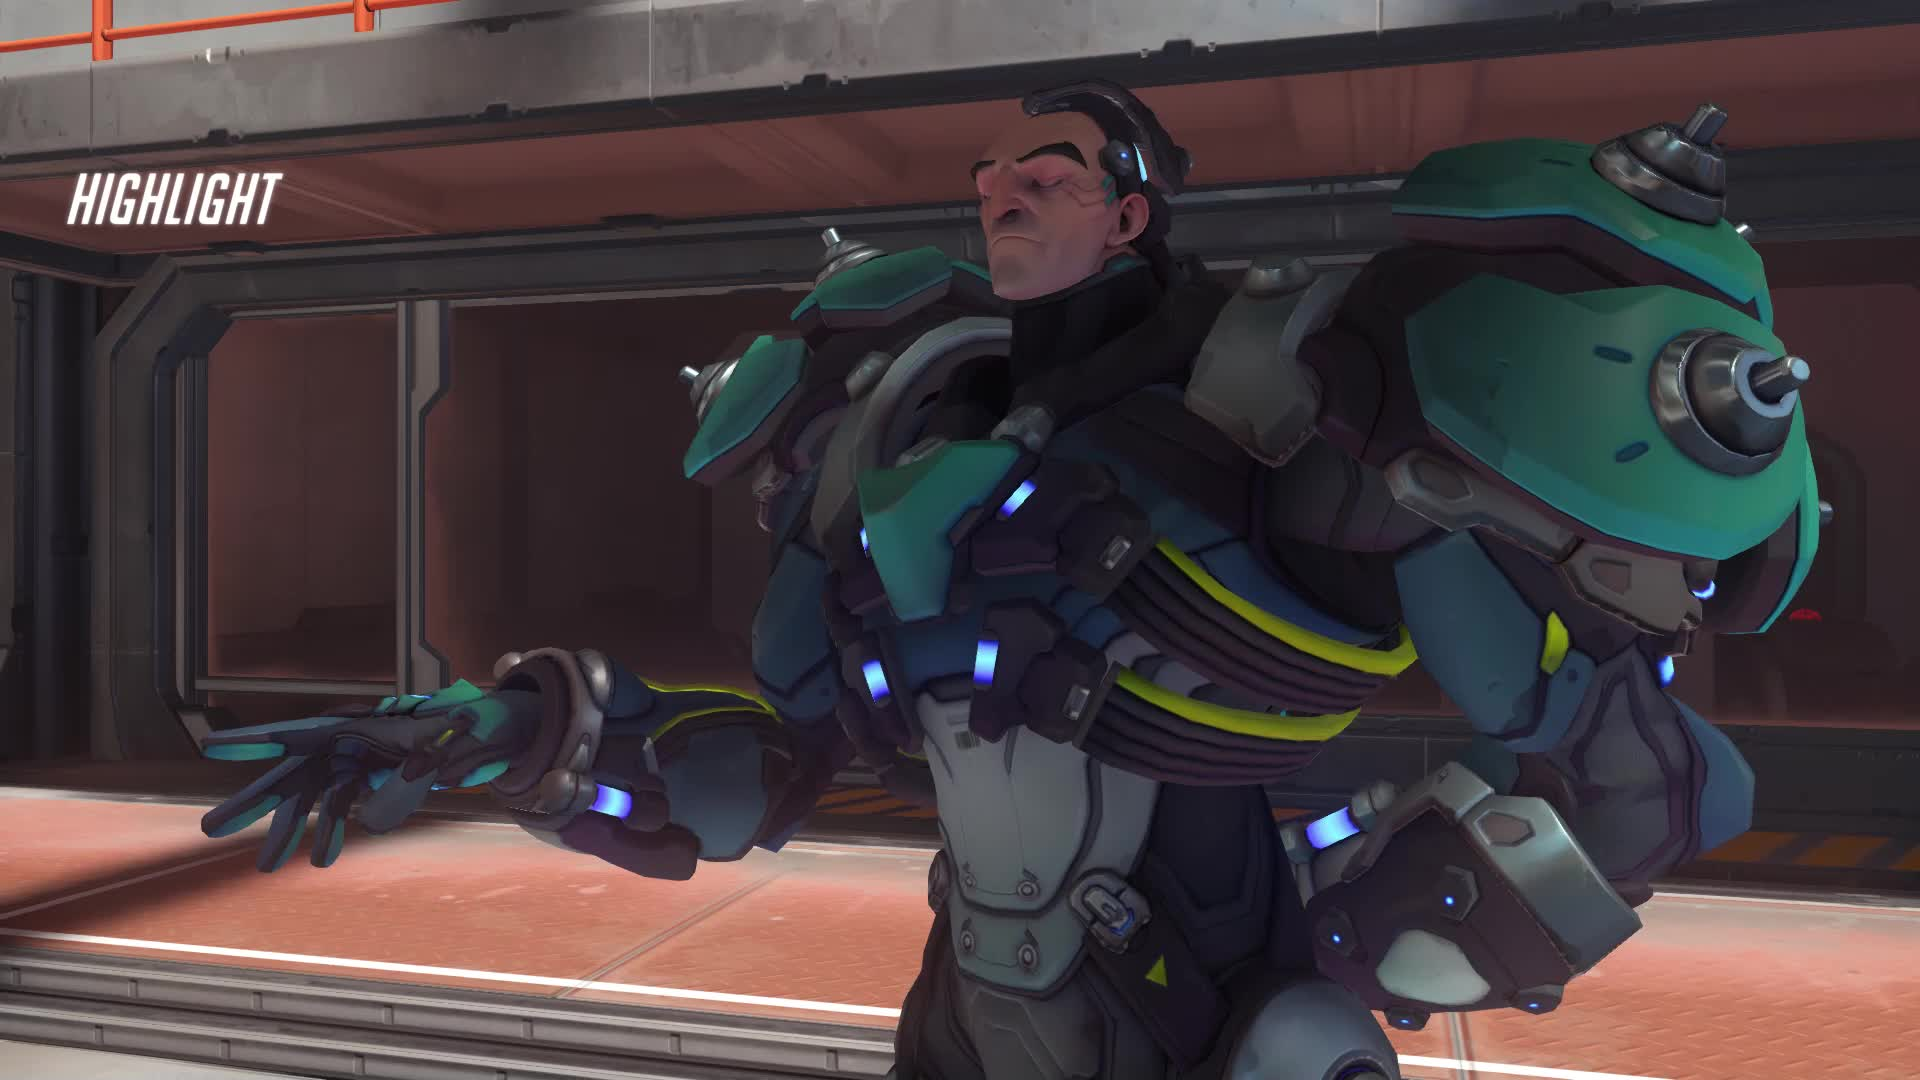 highlight, overwatch, sigma 19-07-23 21-34-03 GIFs